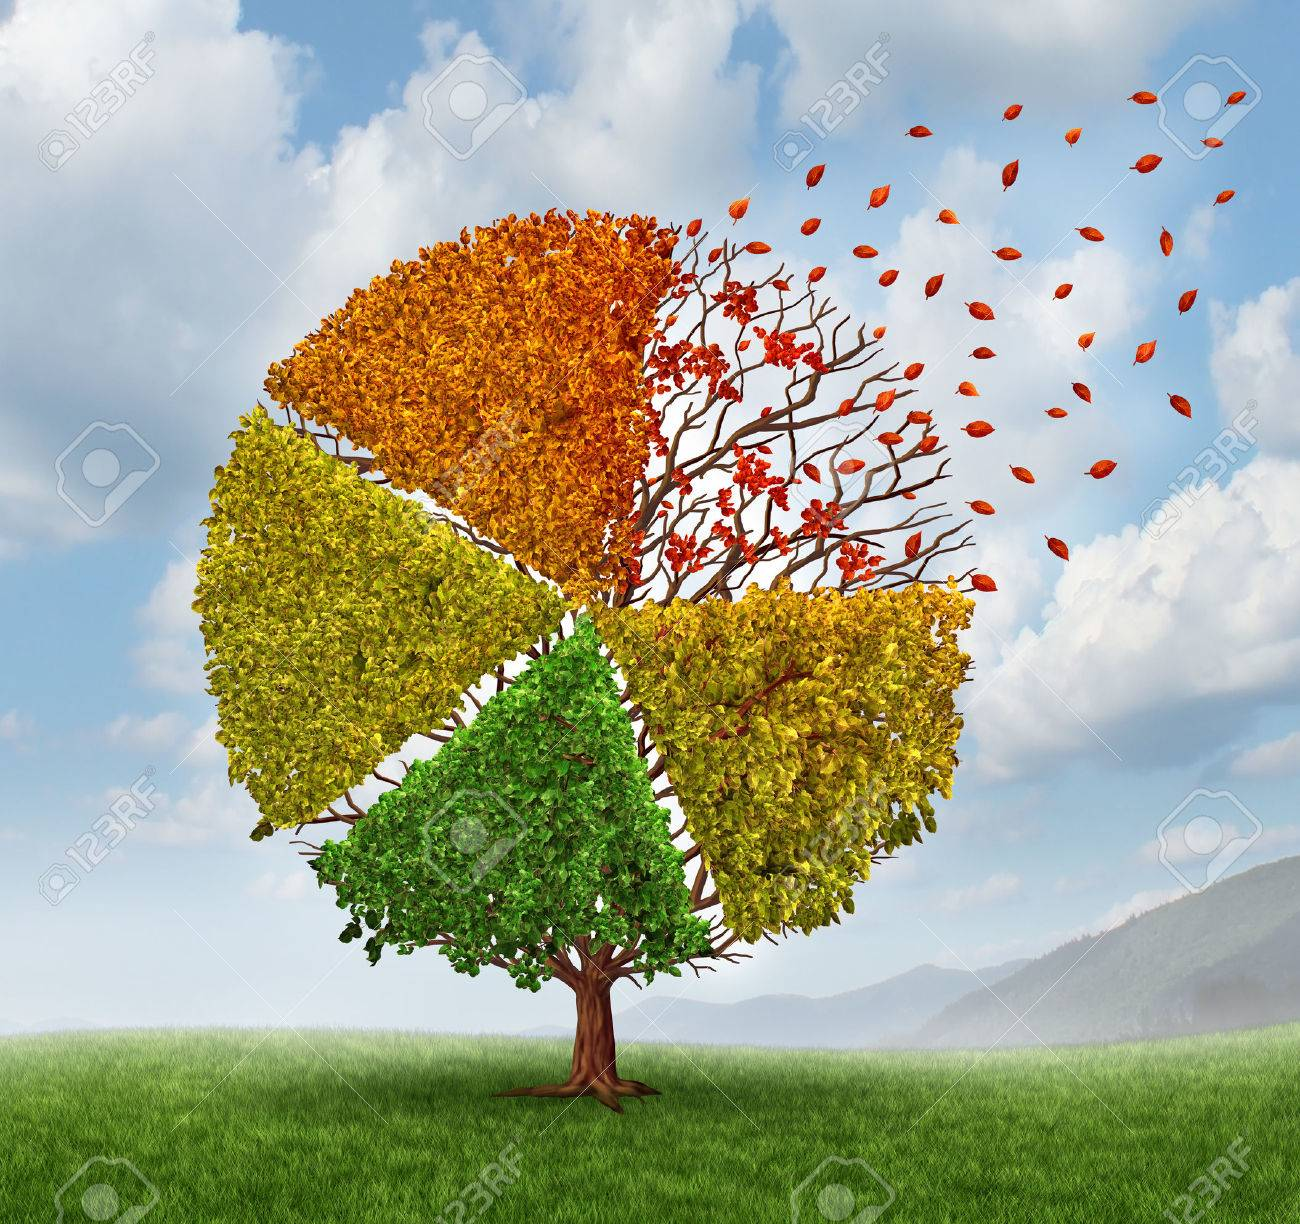 Changing market concept and losing business pie chart as an aging green tree with leaves turning yellow to red and falling off as a change metaphor for investing conditions as a financial graph chart symbol of economic challenges. - 23843267